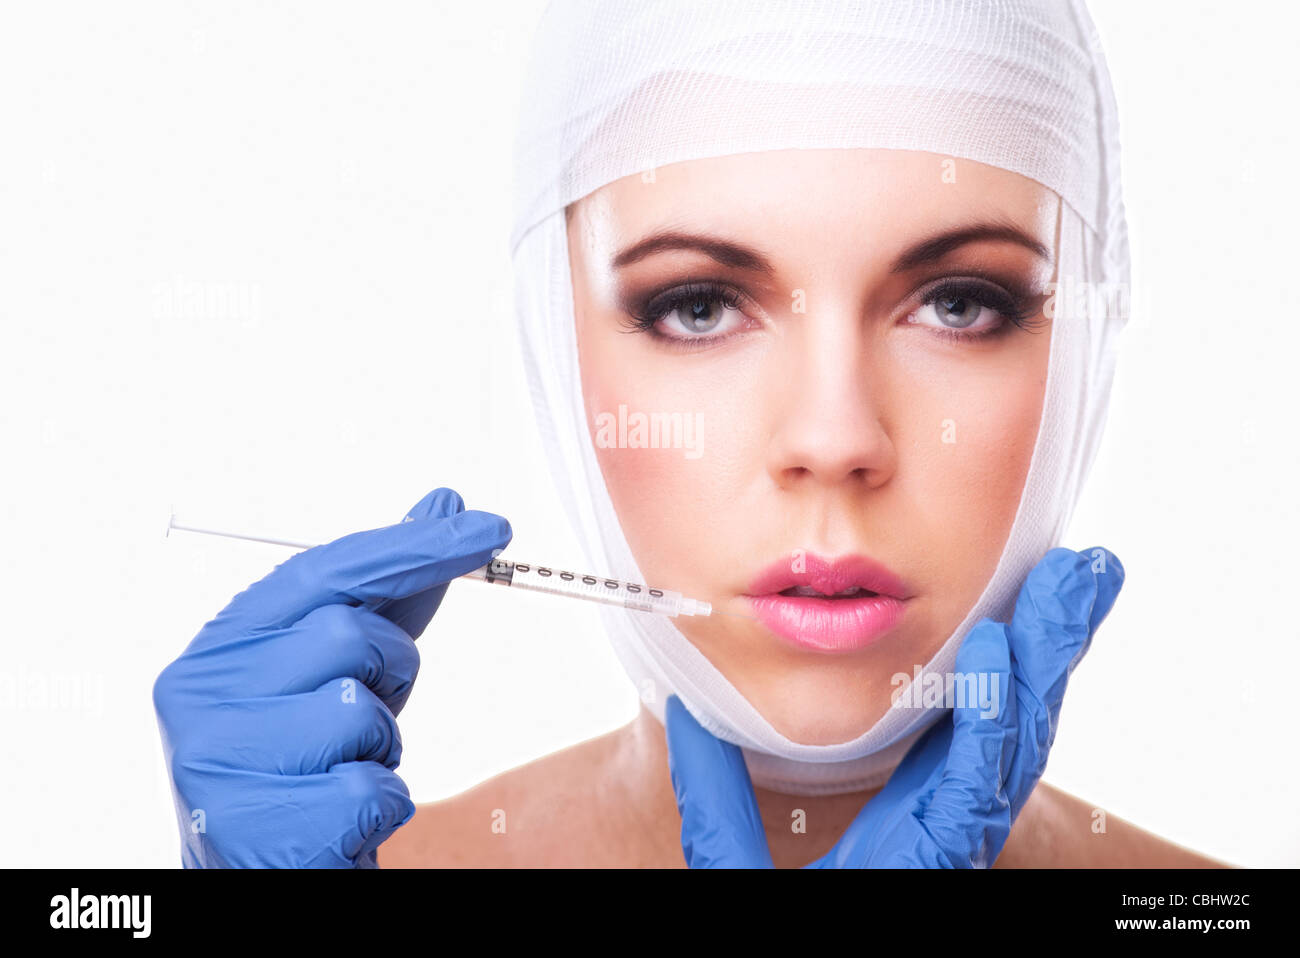 woman having lip plumping injection into lips - Stock Image